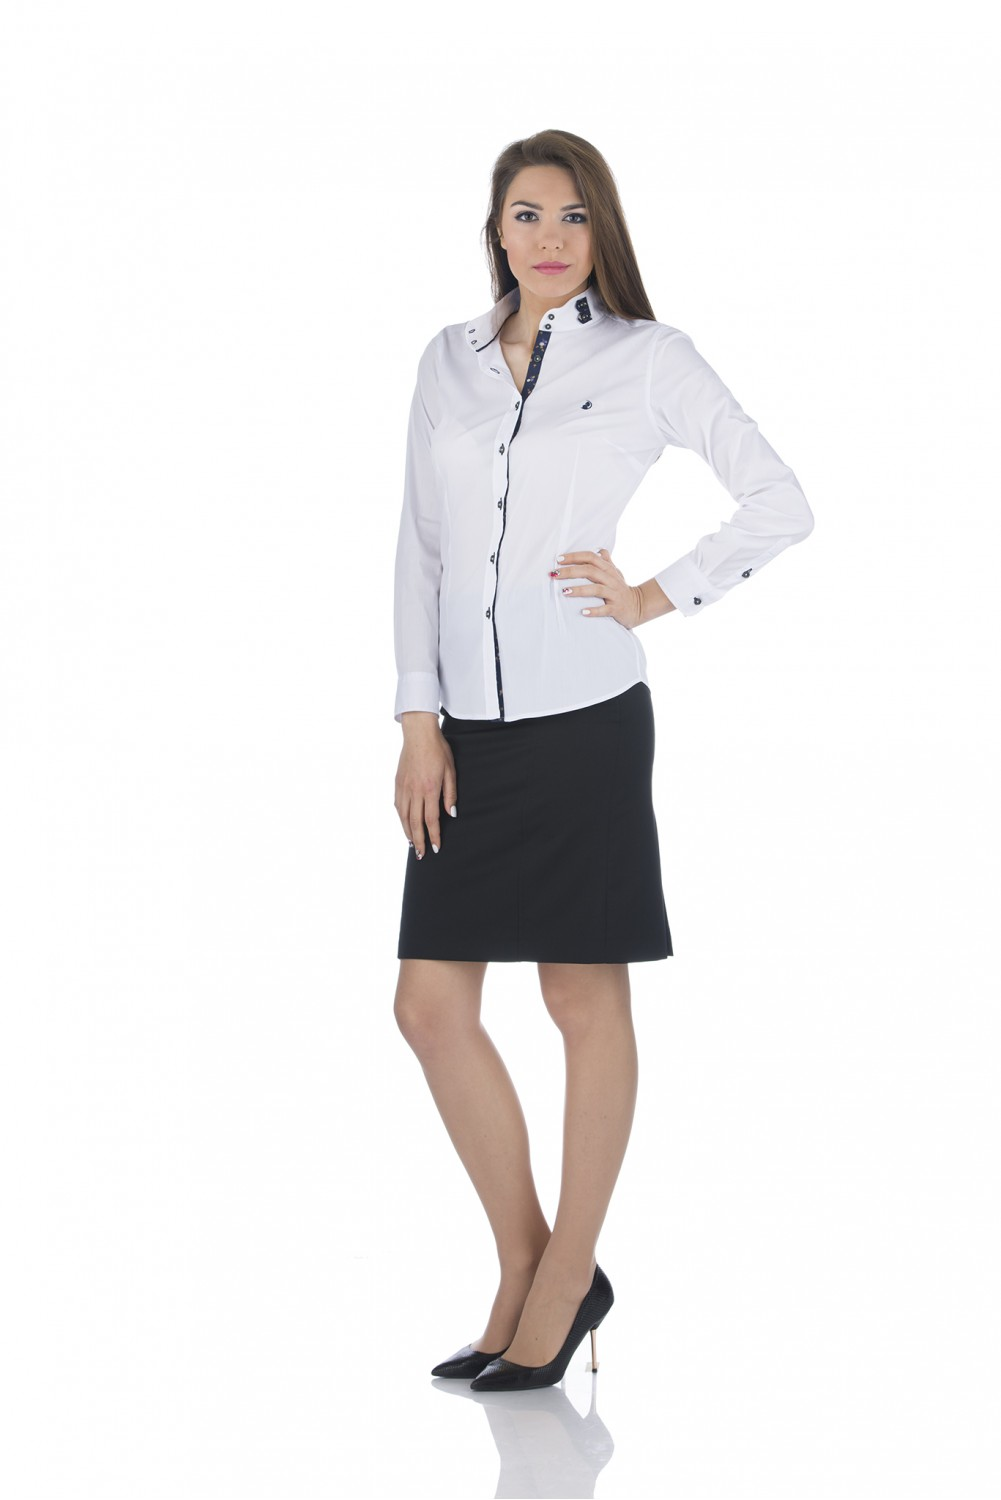 White shirt with navy details